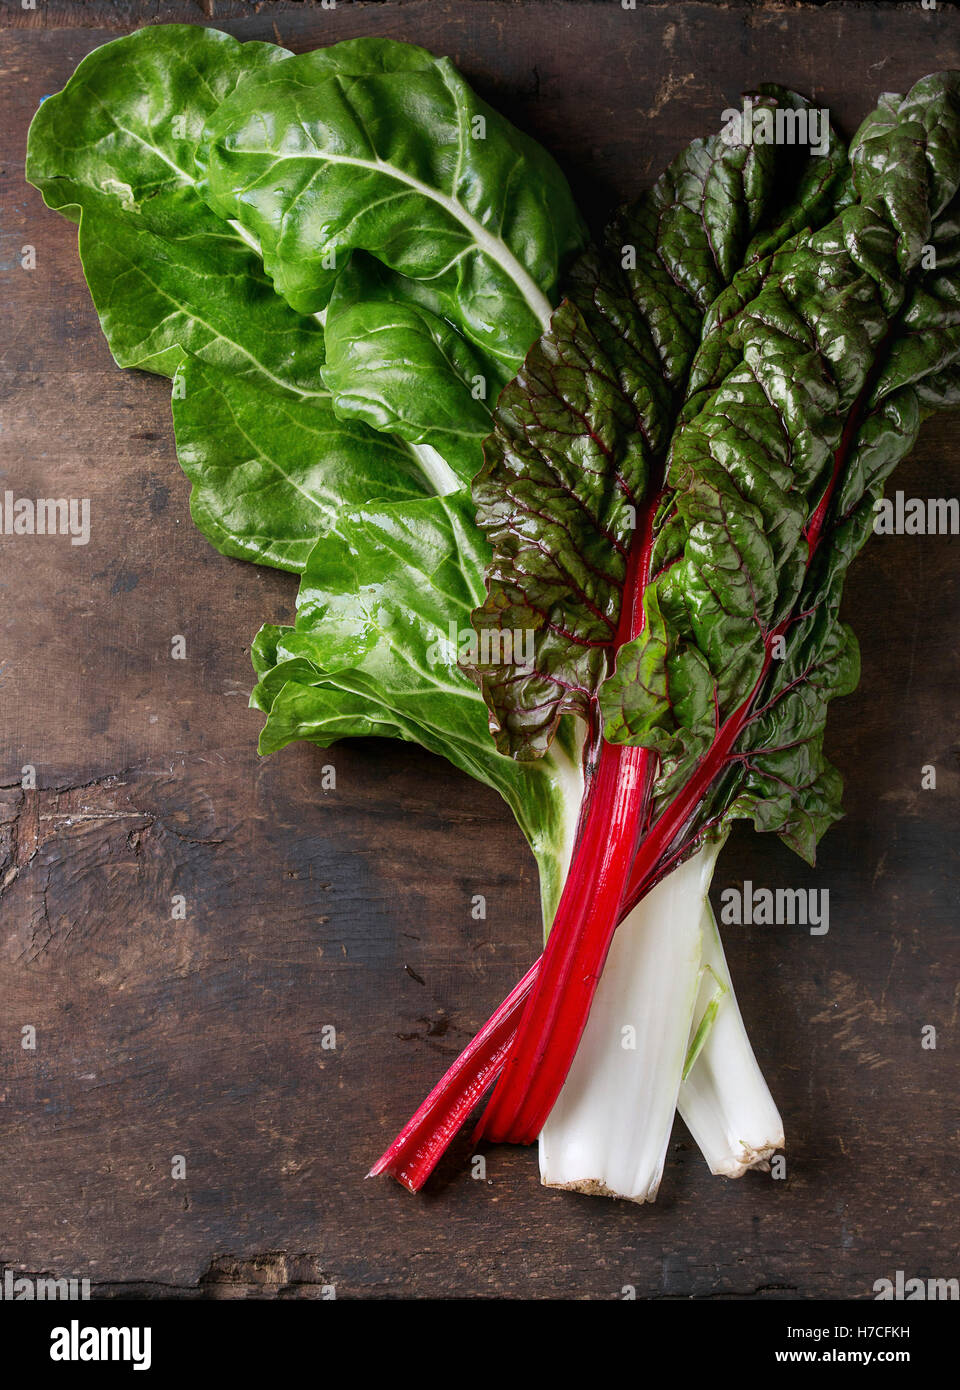 Variety of fresh chard mangold salad leaves over old dark wooden background. Top view with space for text. Healthy - Stock Image